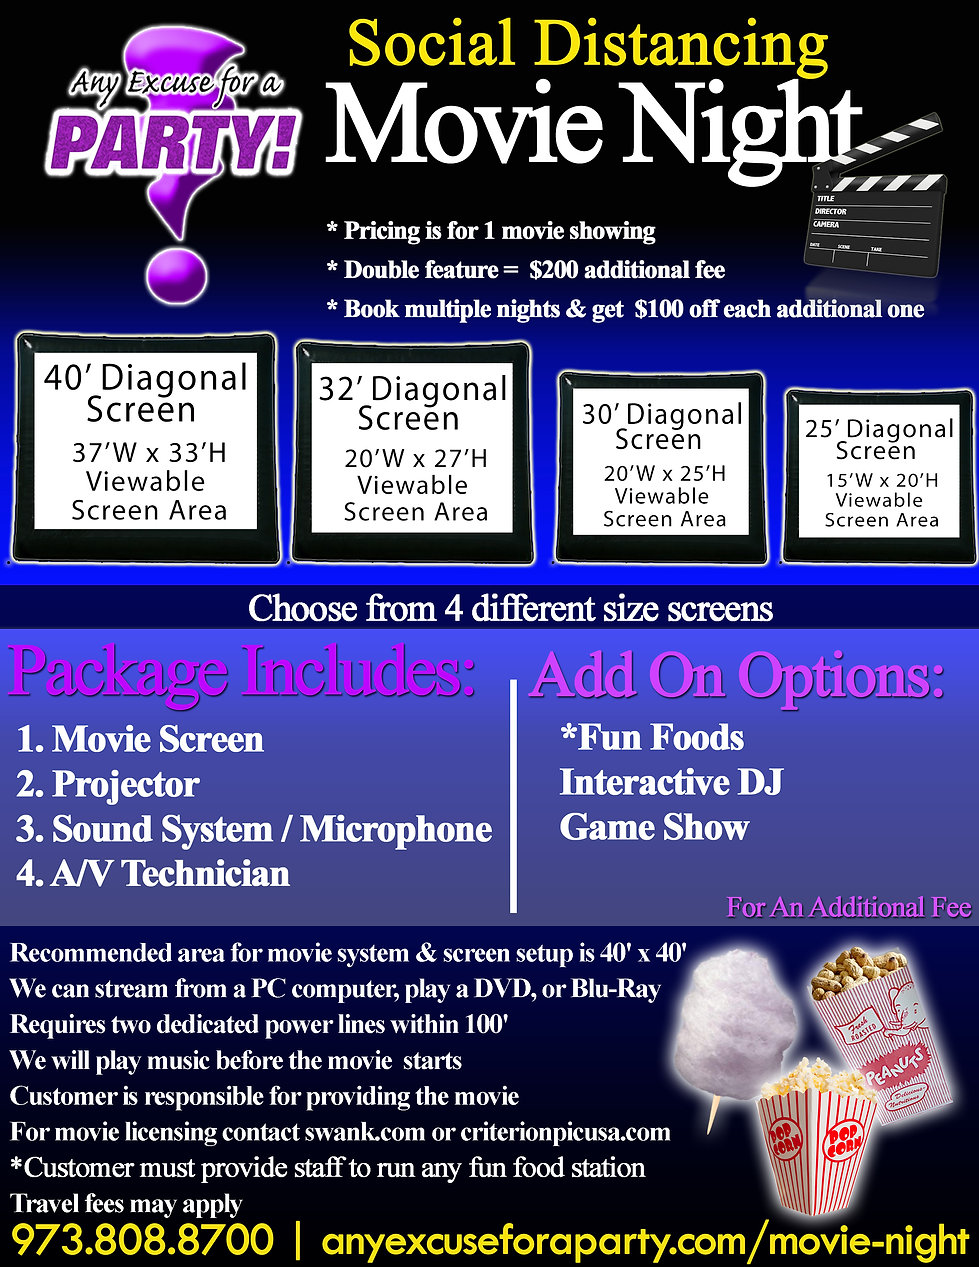 Social Distancing Movie Night Flyer with